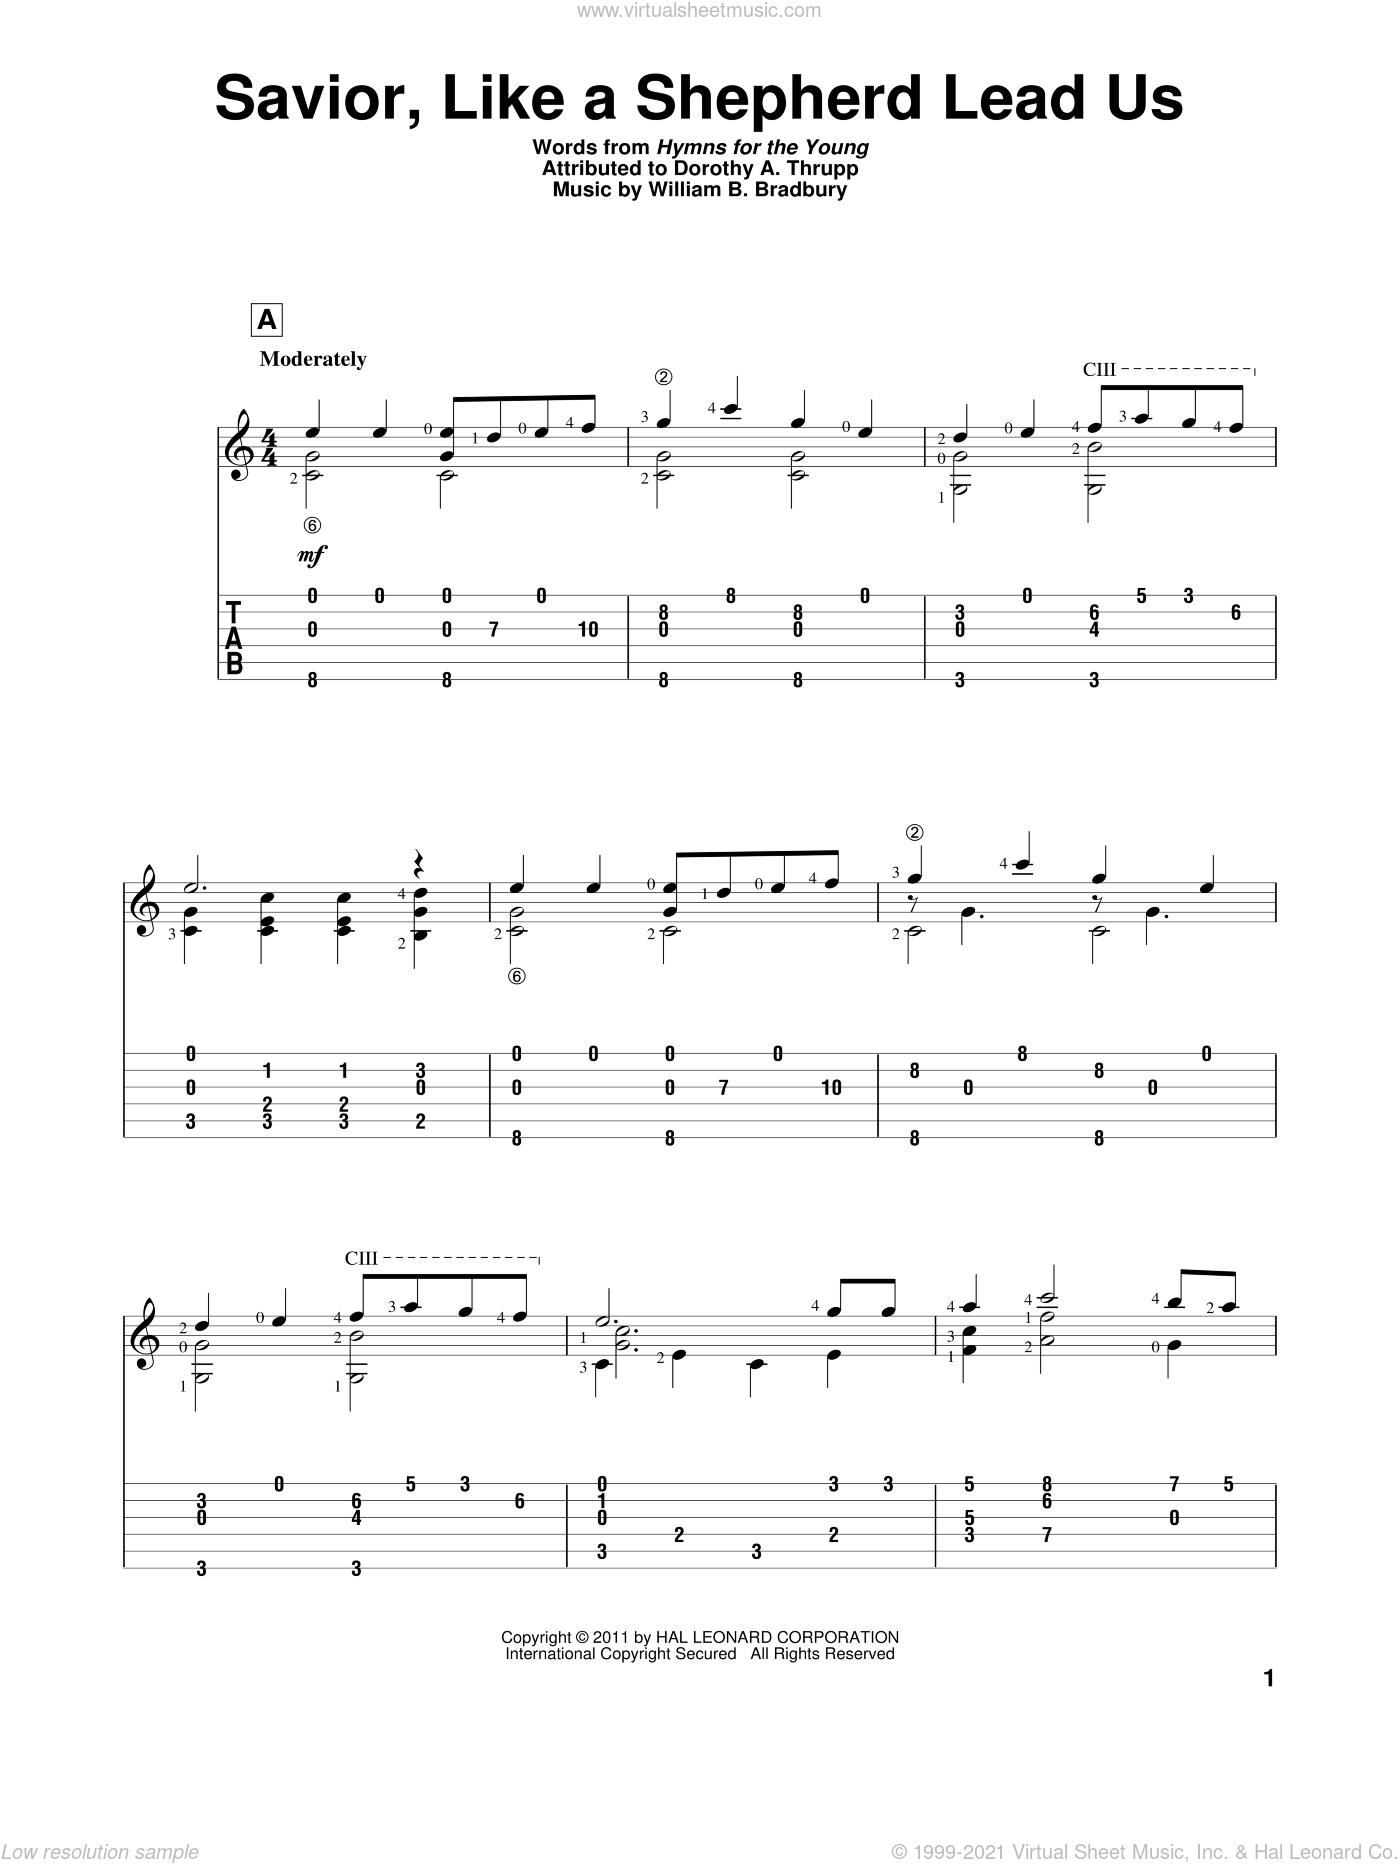 Savior, Like A Shepherd Lead Us sheet music for guitar solo by Dorothy A. Thrupp